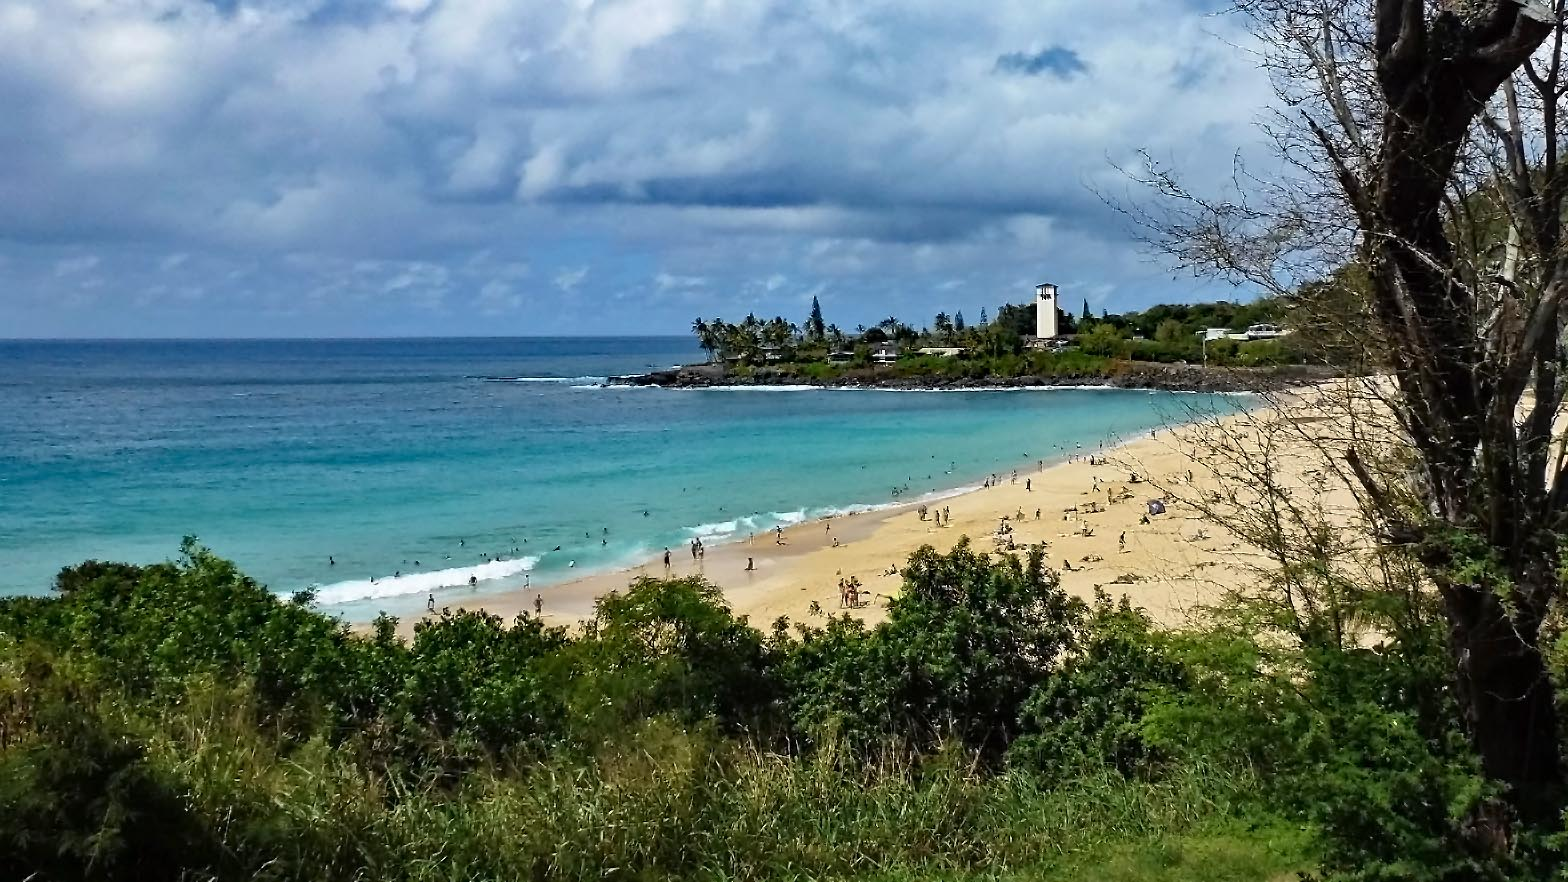 Waimea Bay in the summer, another one of the things to see driving on Oahu.